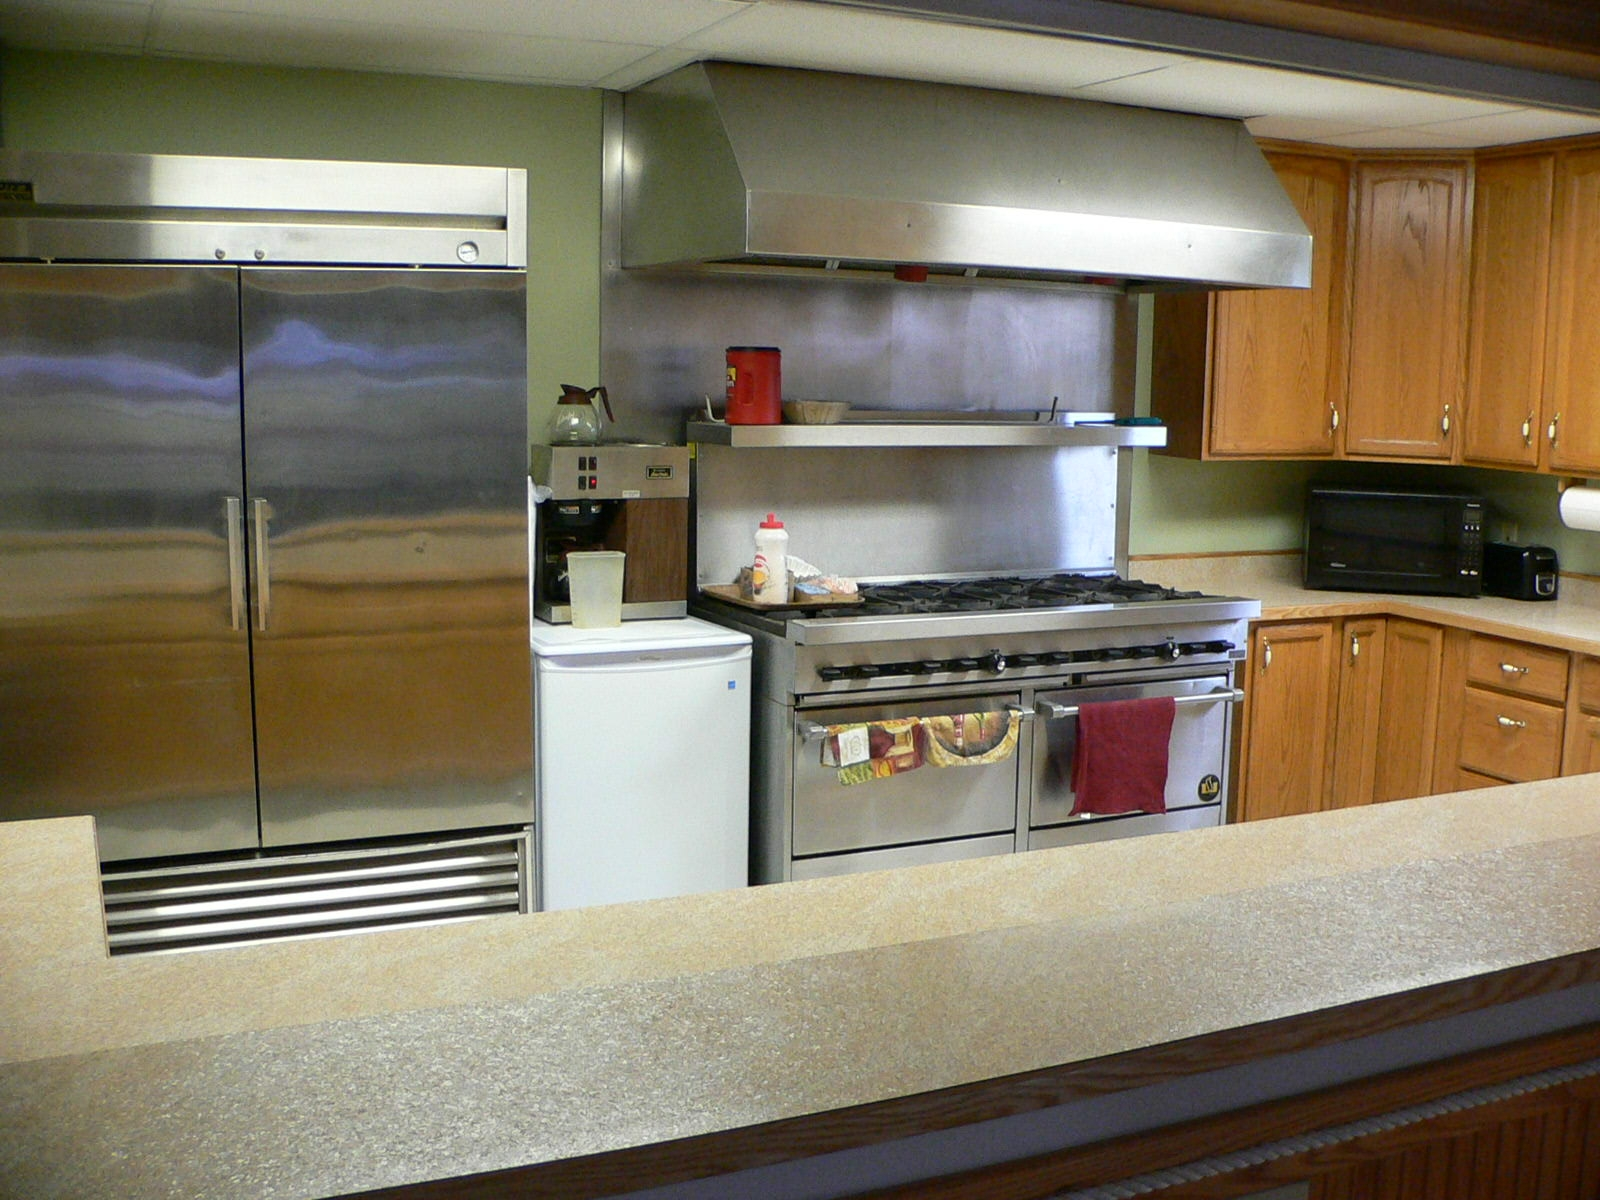 Commercial Appliances At Home Edgewood Cabinetry